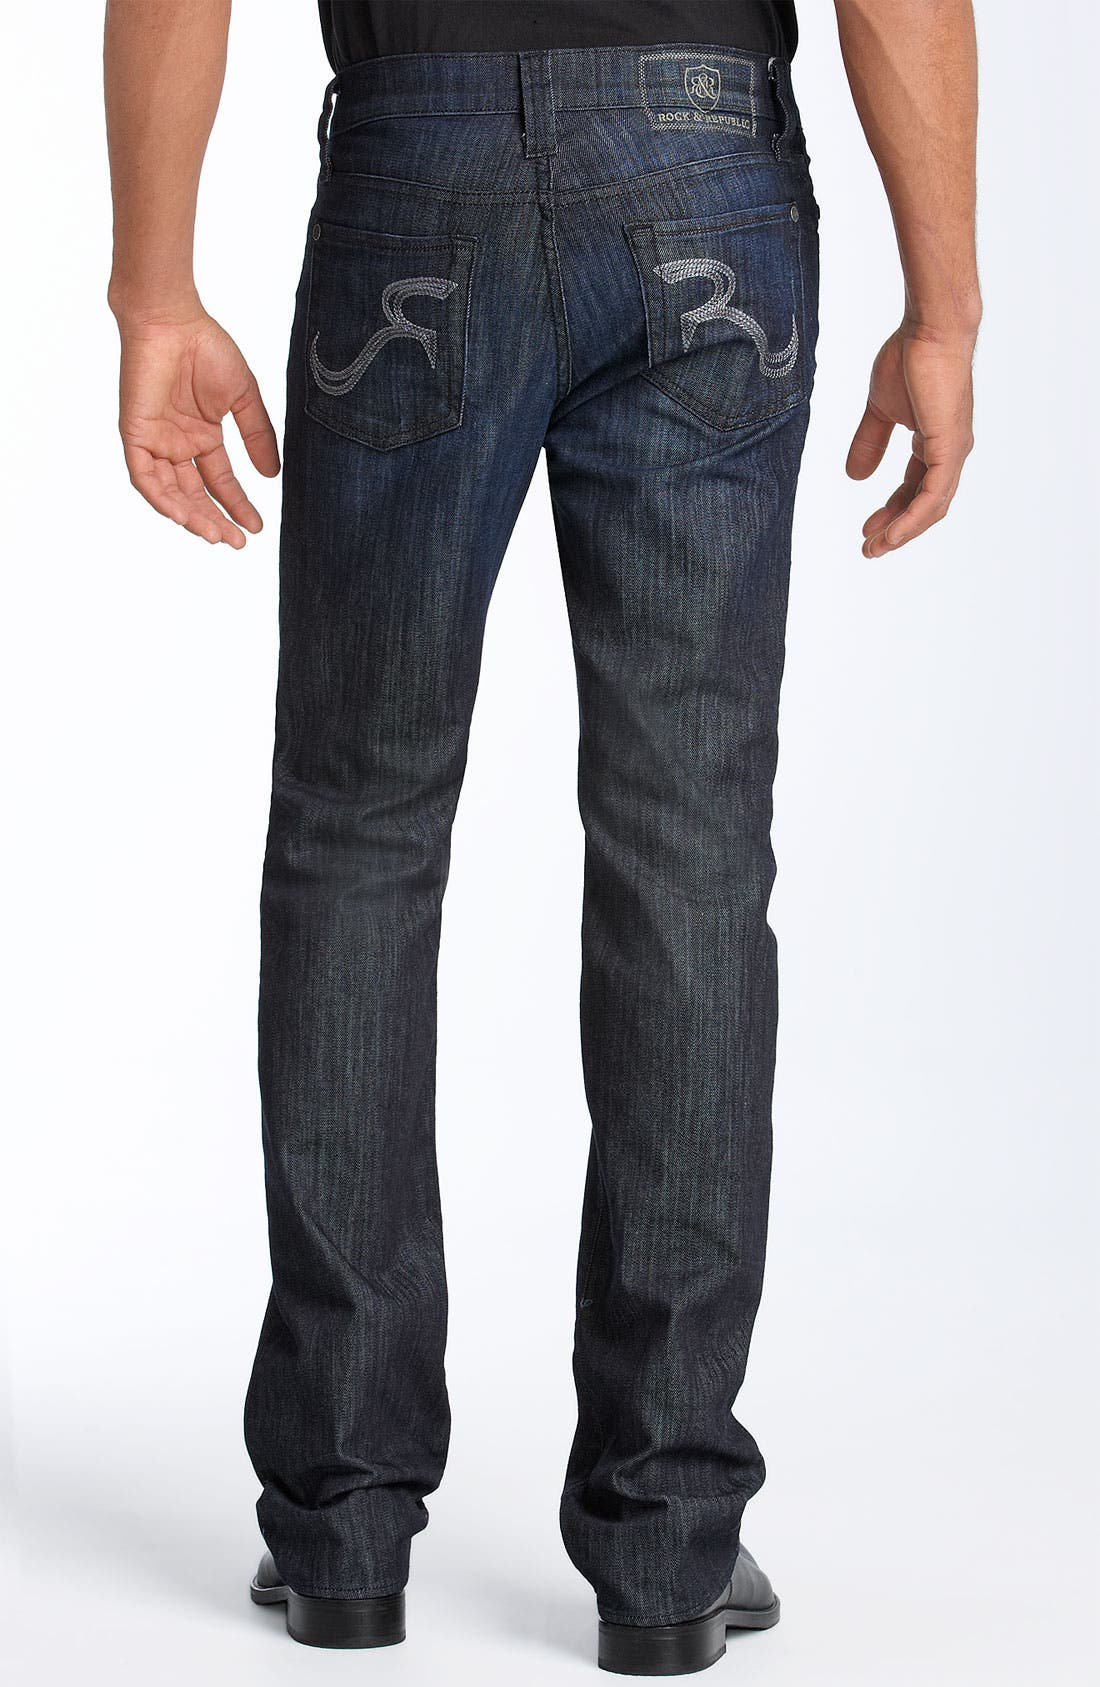 ROCK & REPUBLIC 'Neil' Relaxed Straight Leg Jeans, Main, color, 490